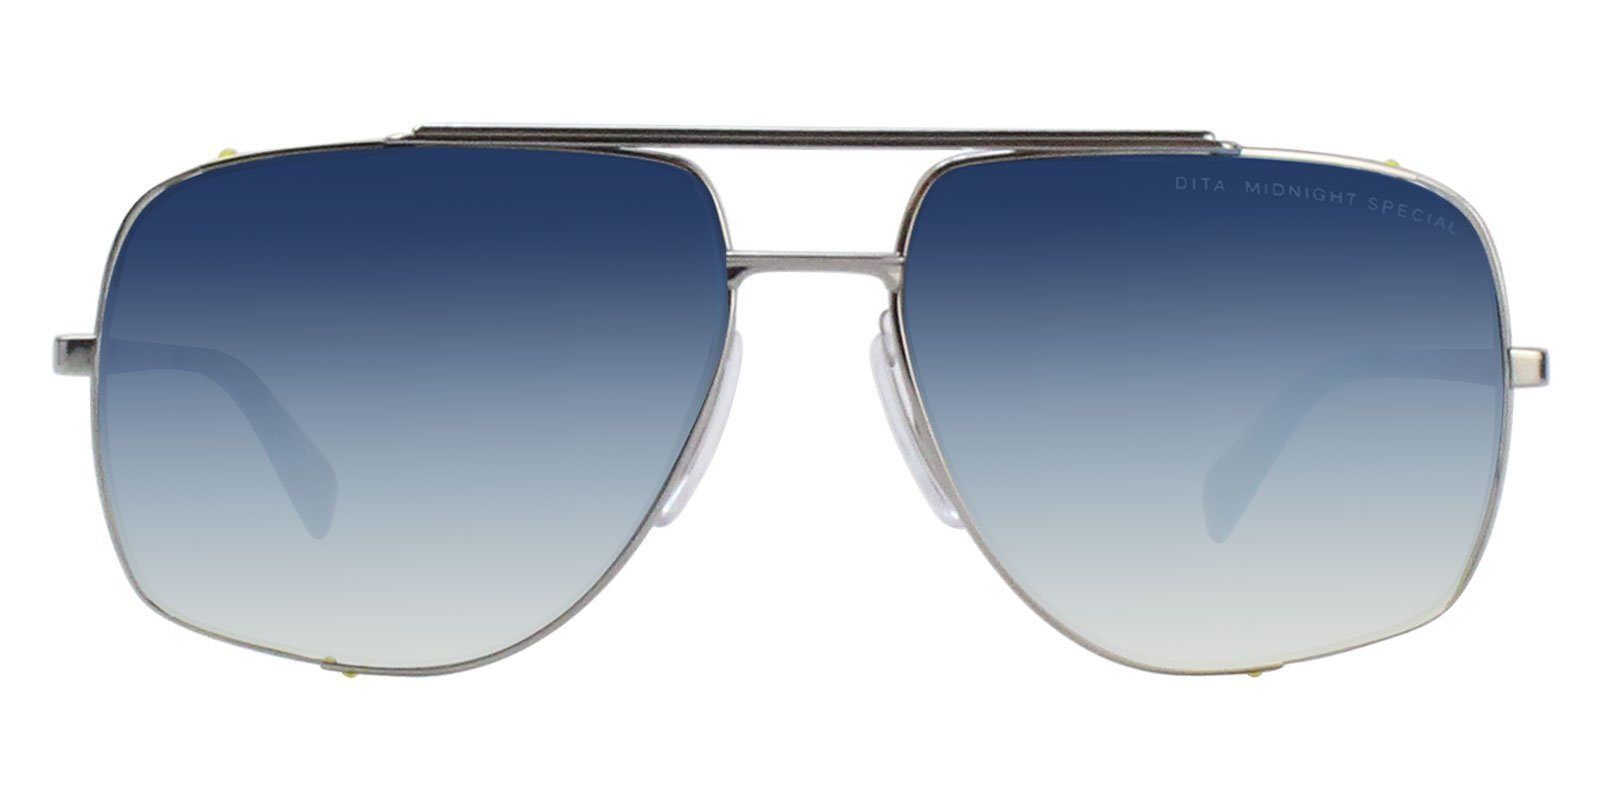 18b47cd77a6 These Dita Midnight Special sunglasses are beautifully handcrafted with  premium mental. The black and blue midnight special double bridge aviators  feature a ...